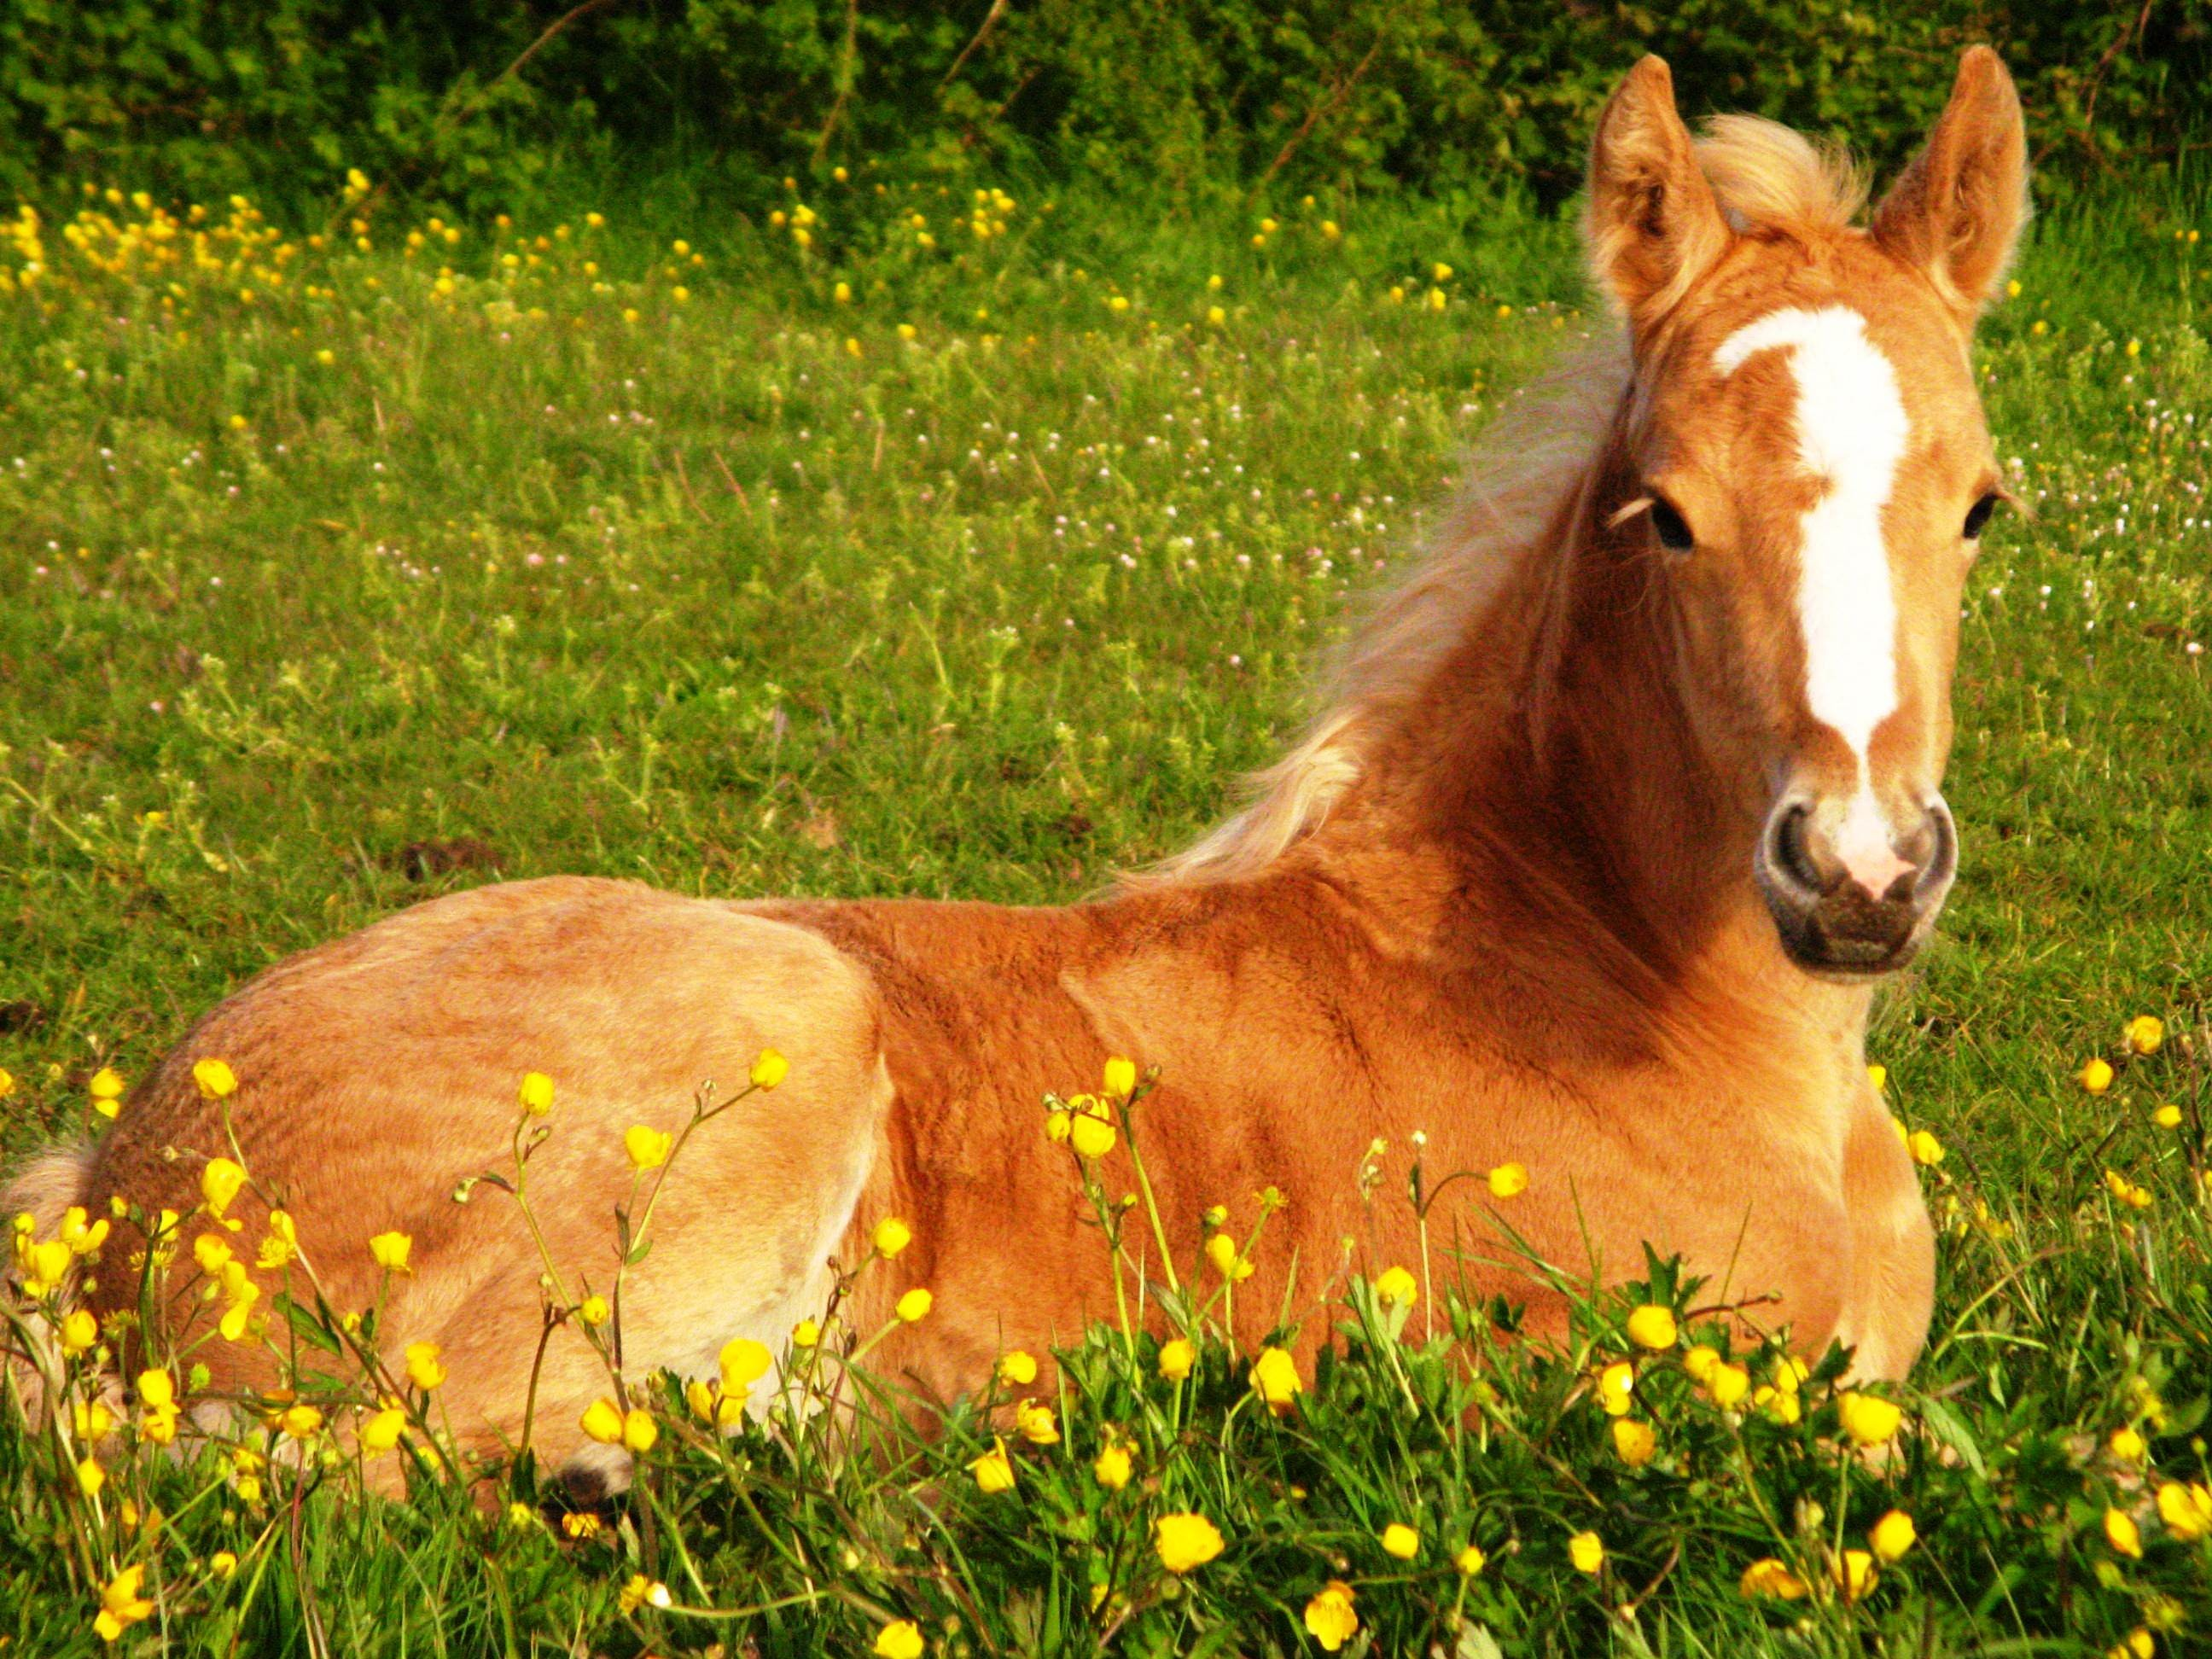 Cute Horse Wallpapers ·①